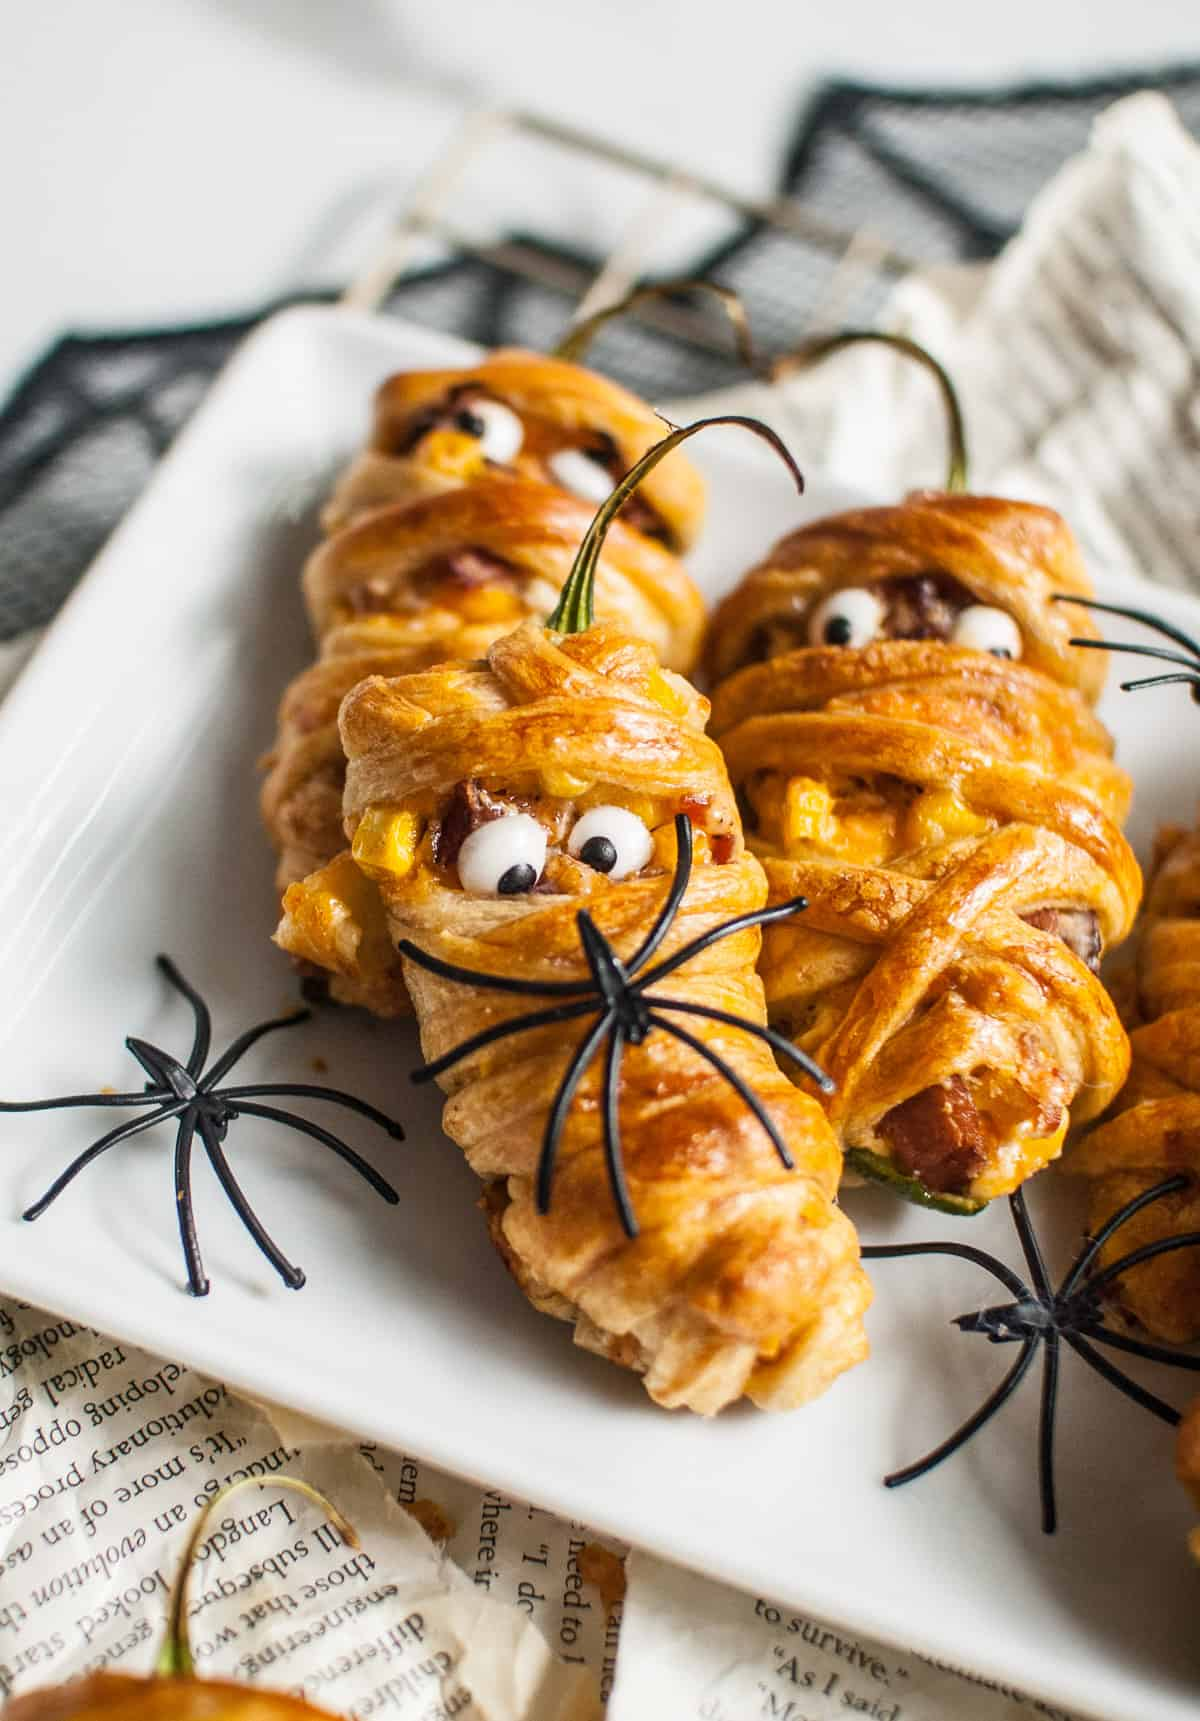 A jalapeno popper wrapped in crescent roll dough to look like a mummy with candy eyes looking cross-eyed at a plastic spider.